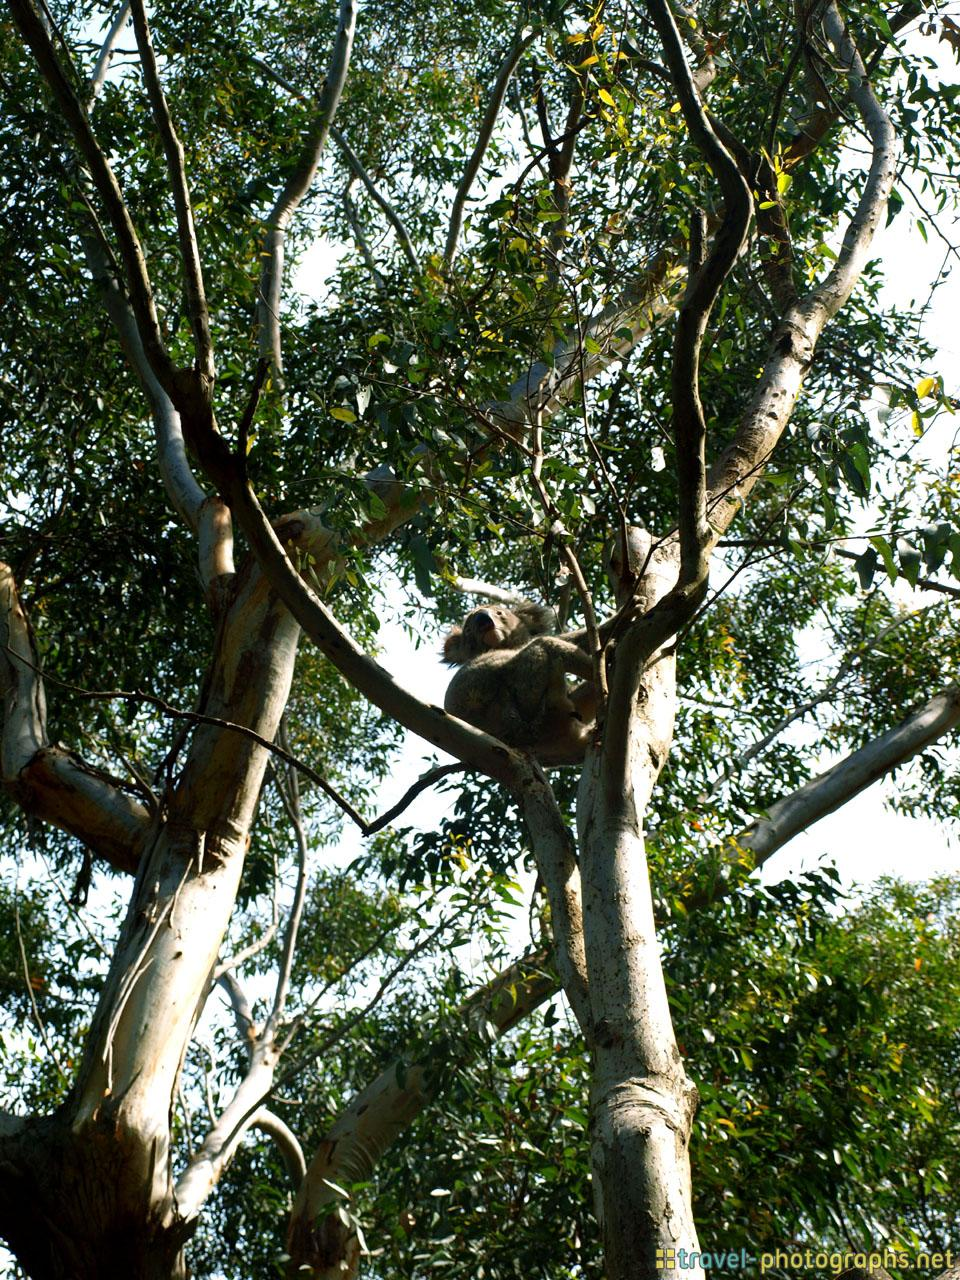 austrlalia-photos-koala-bear-on-tree